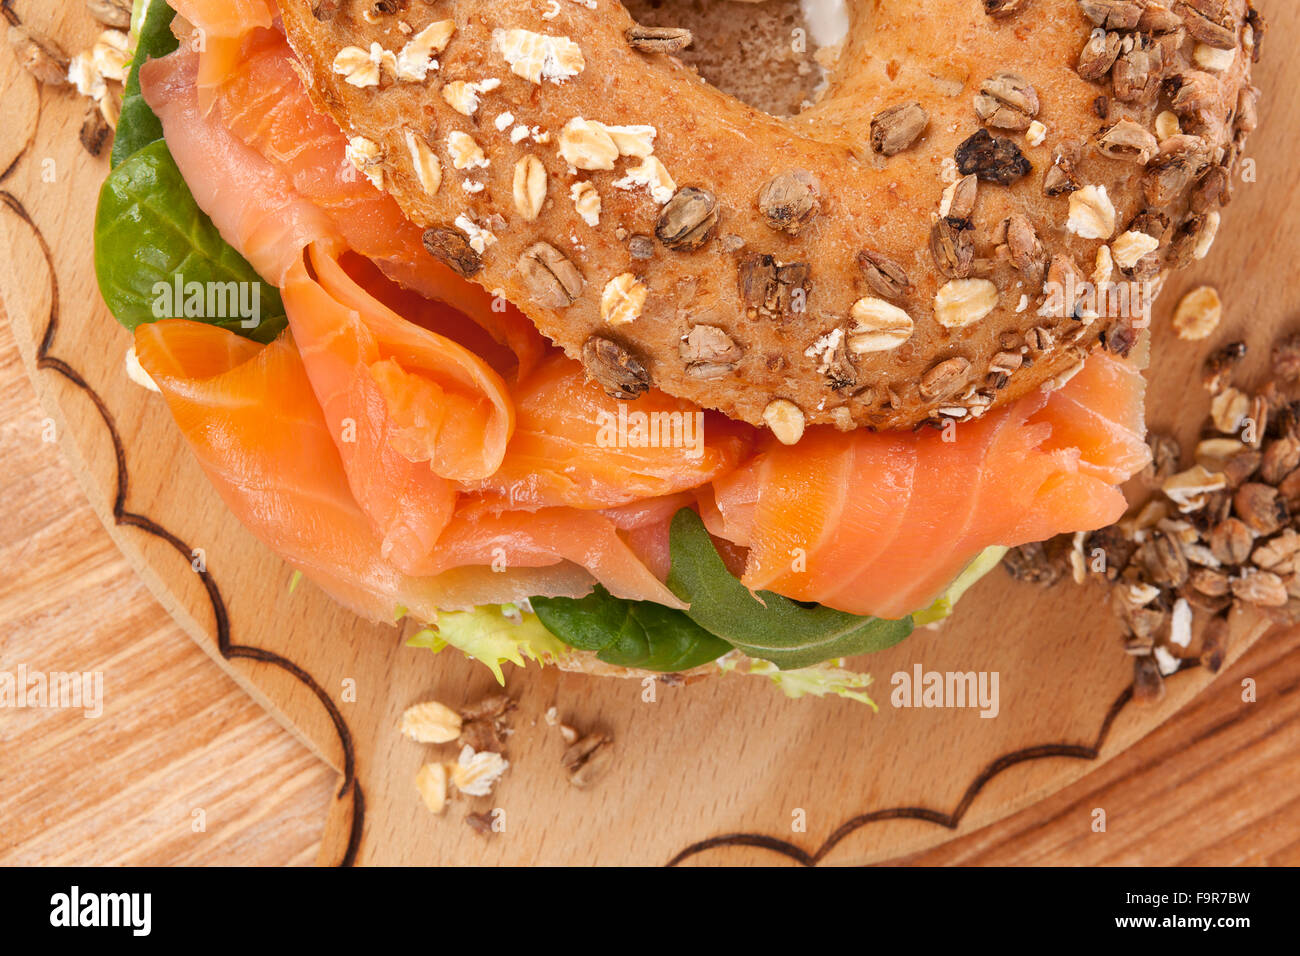 Culinary bagel eating. - Stock Image